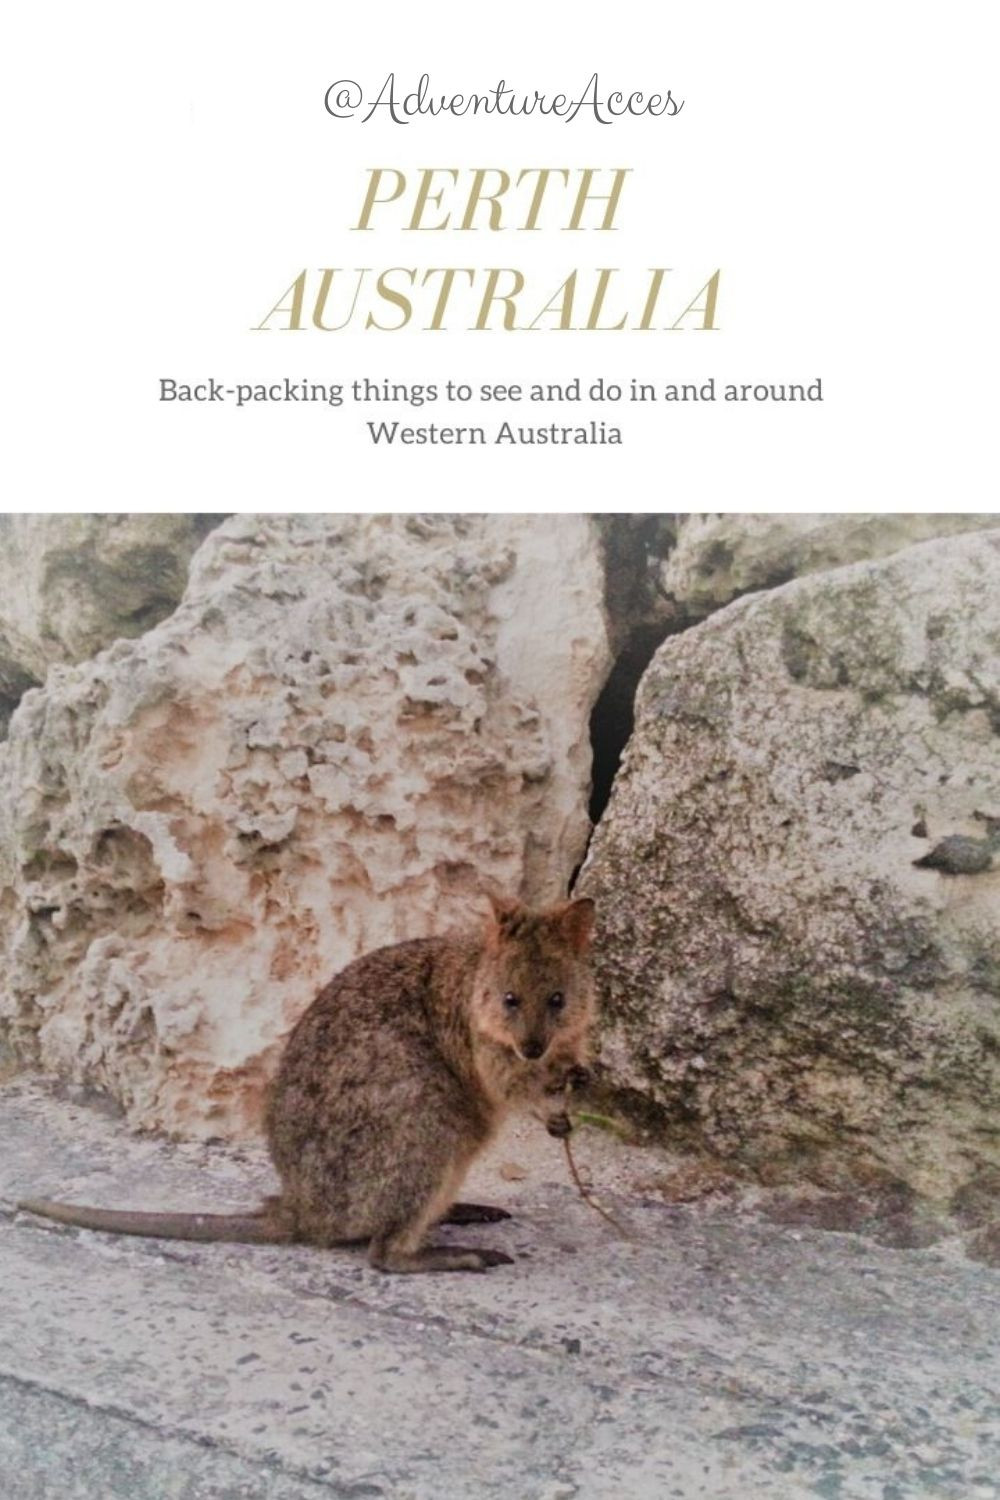 Backpacking things to see and do in and around Perth Australia. Adventure Accessories